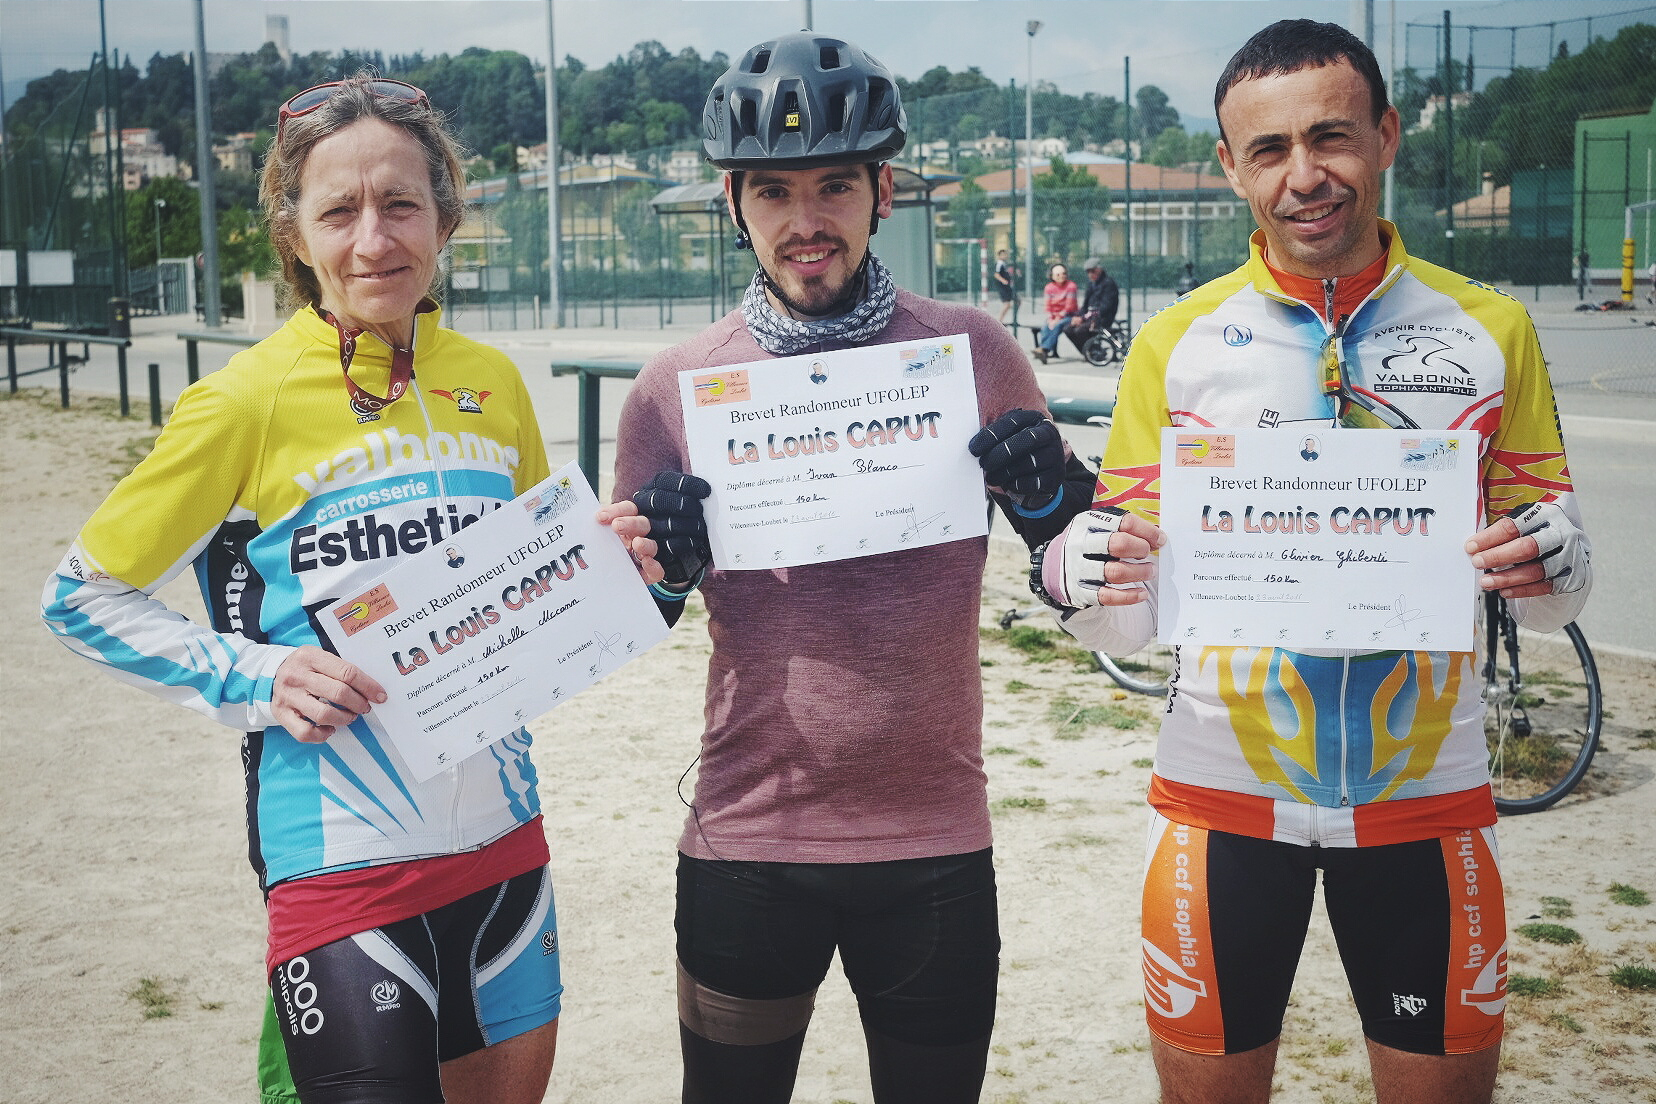 Sportive Louis Caput 2016 by Ivan Blanco (27) - Cycling Louis Caput Friends Michelle Olivier Adventure France South Villeneuve Loubet Provence